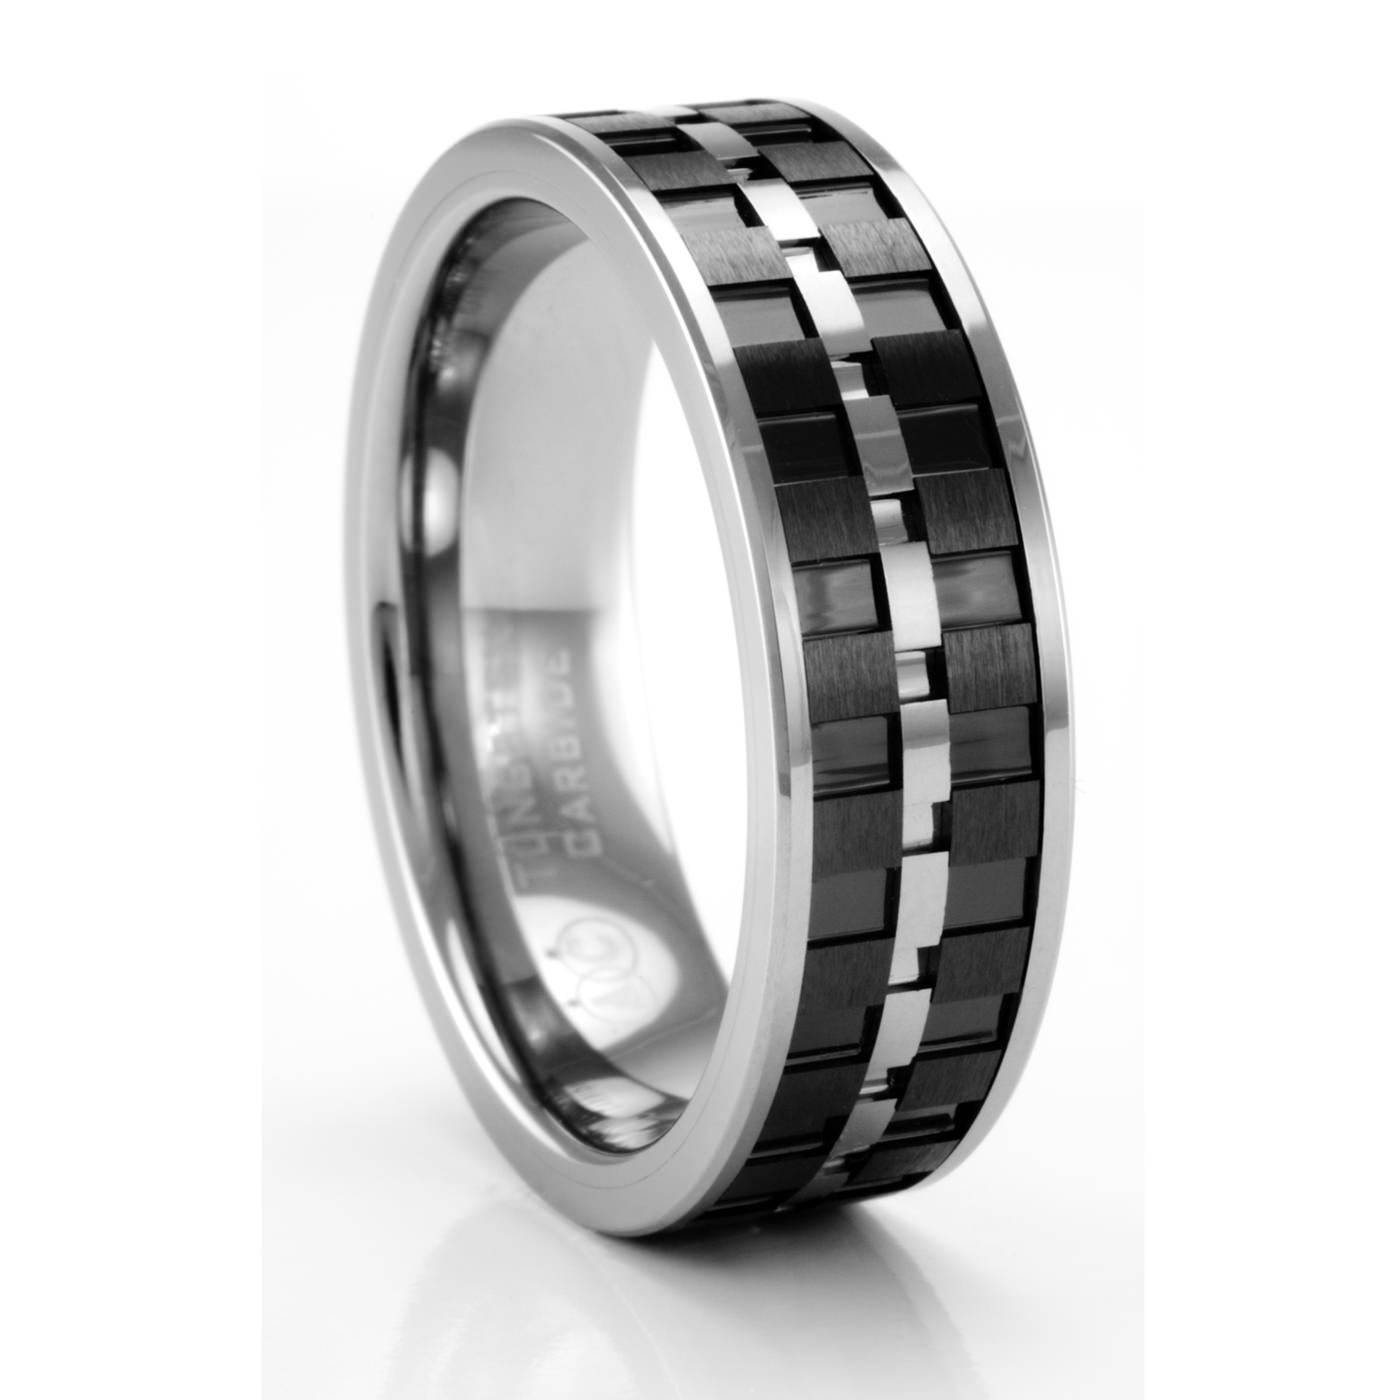 lorenzo tungsten carbon fiber ring artcarved mens wedding bands - Carbon Fiber Wedding Rings